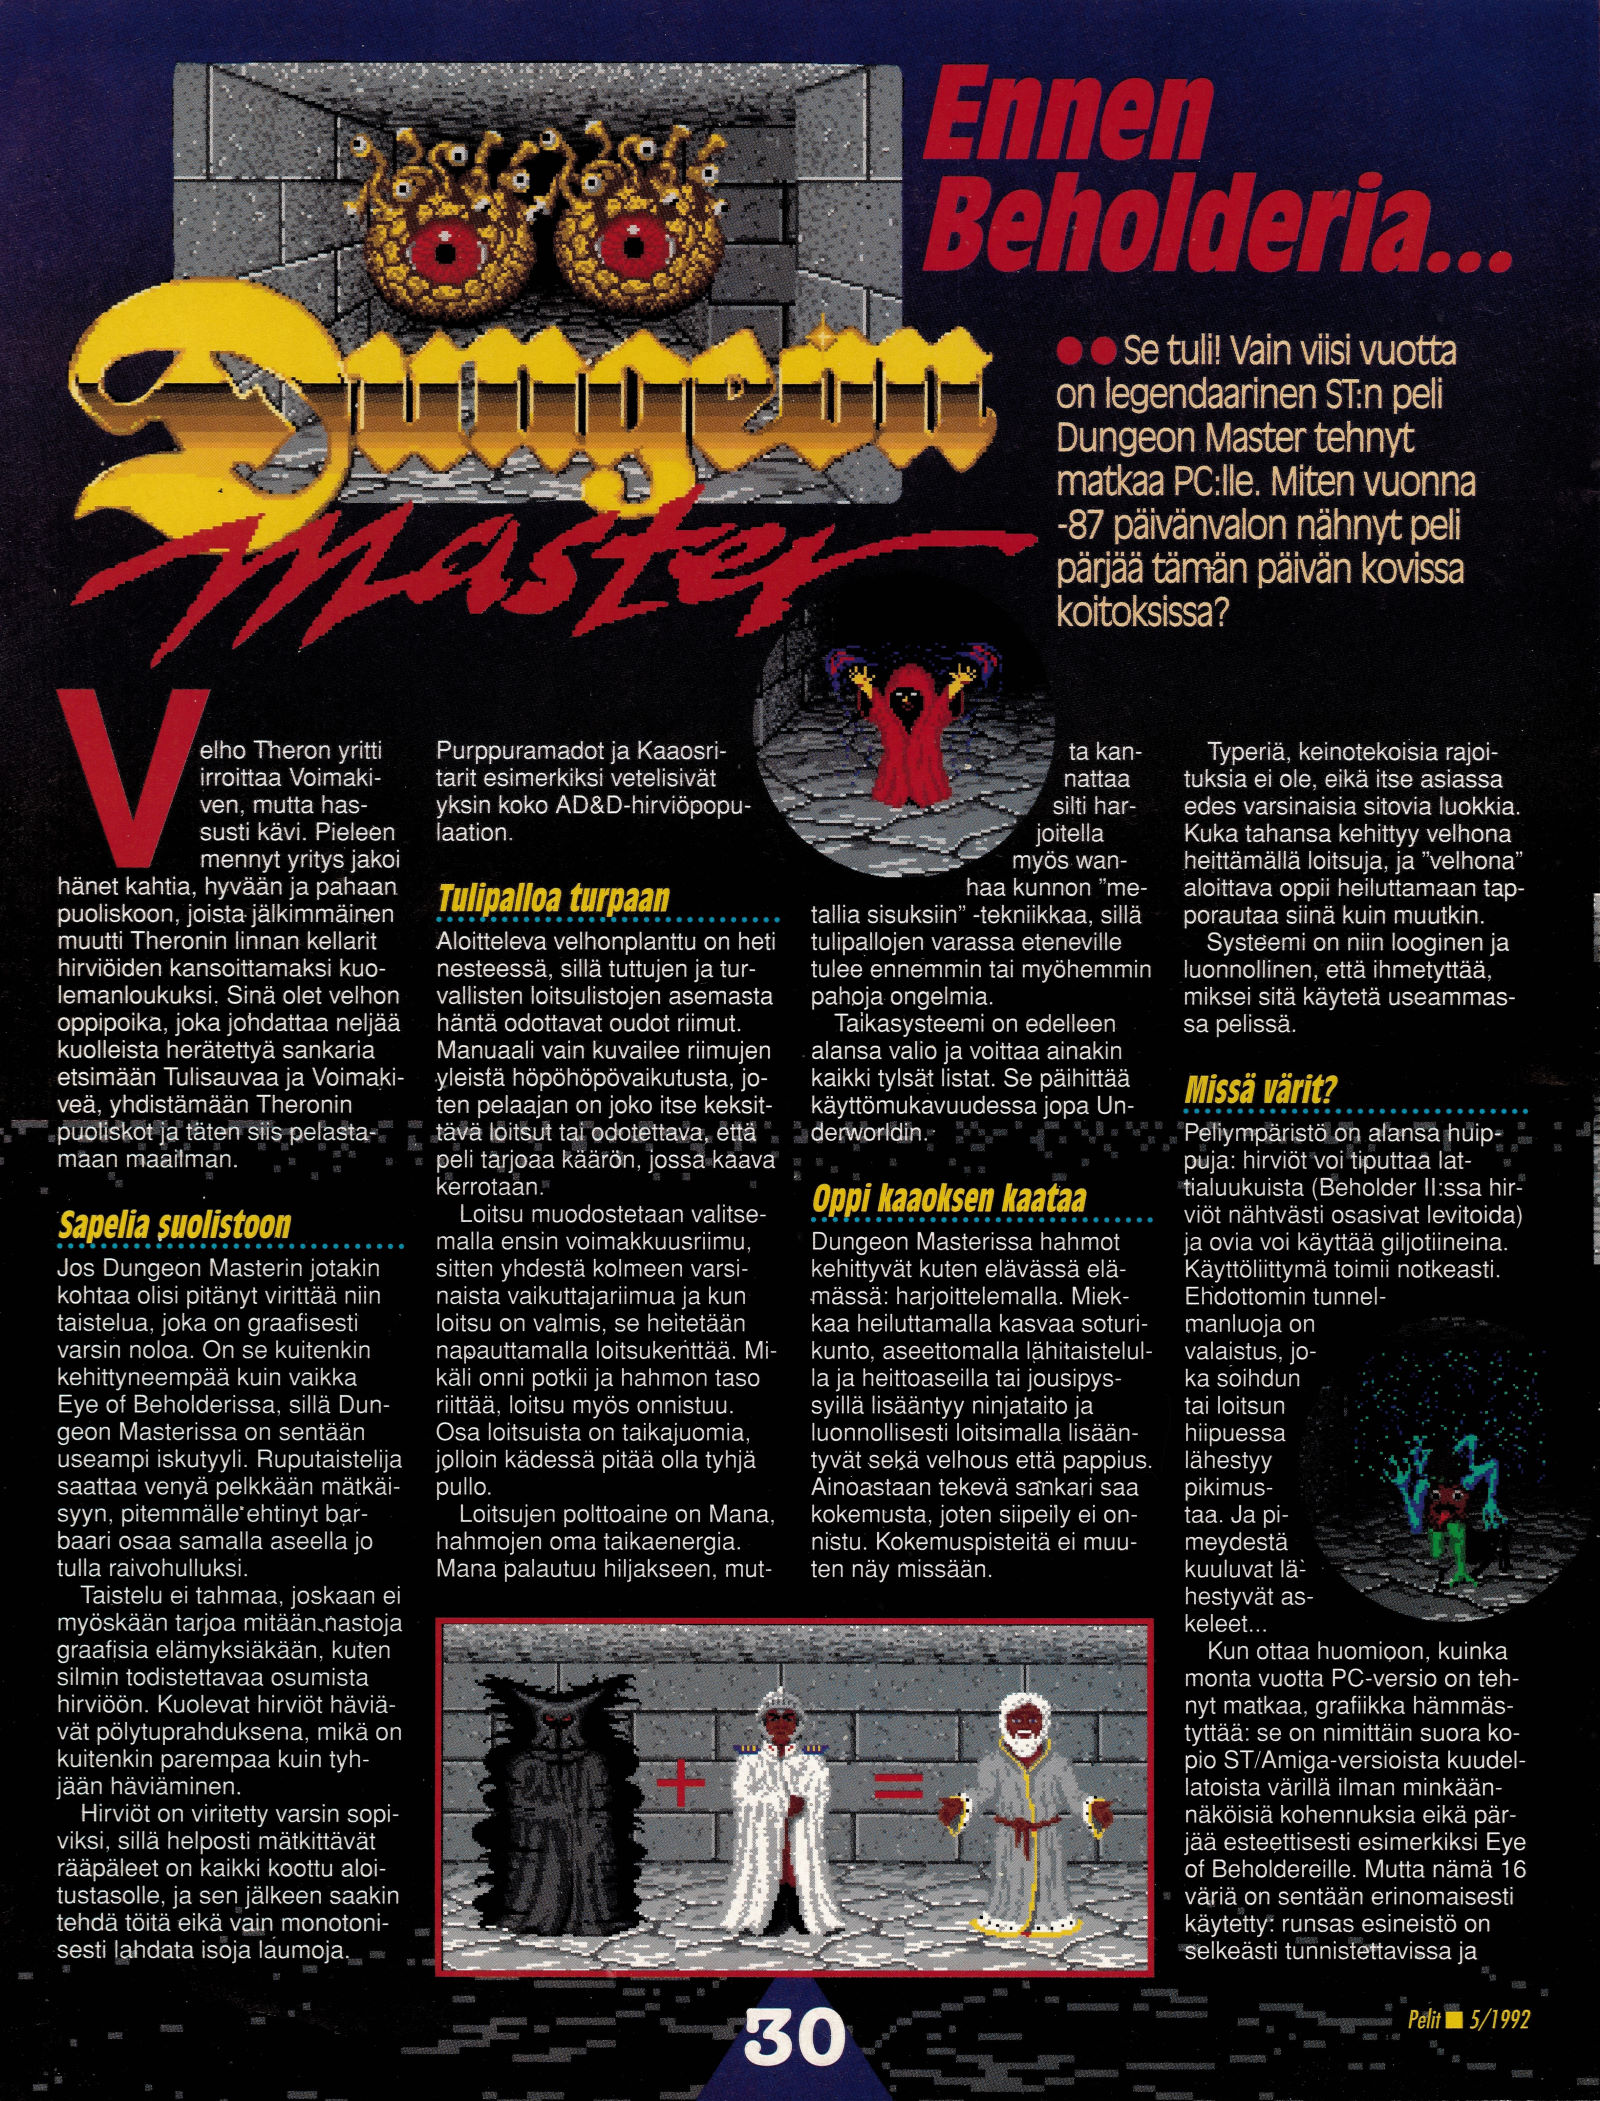 Dungeon Master for PC-Amiga-Atari ST Review published in Finnish magazine 'Pelit', May 1992, Page 30